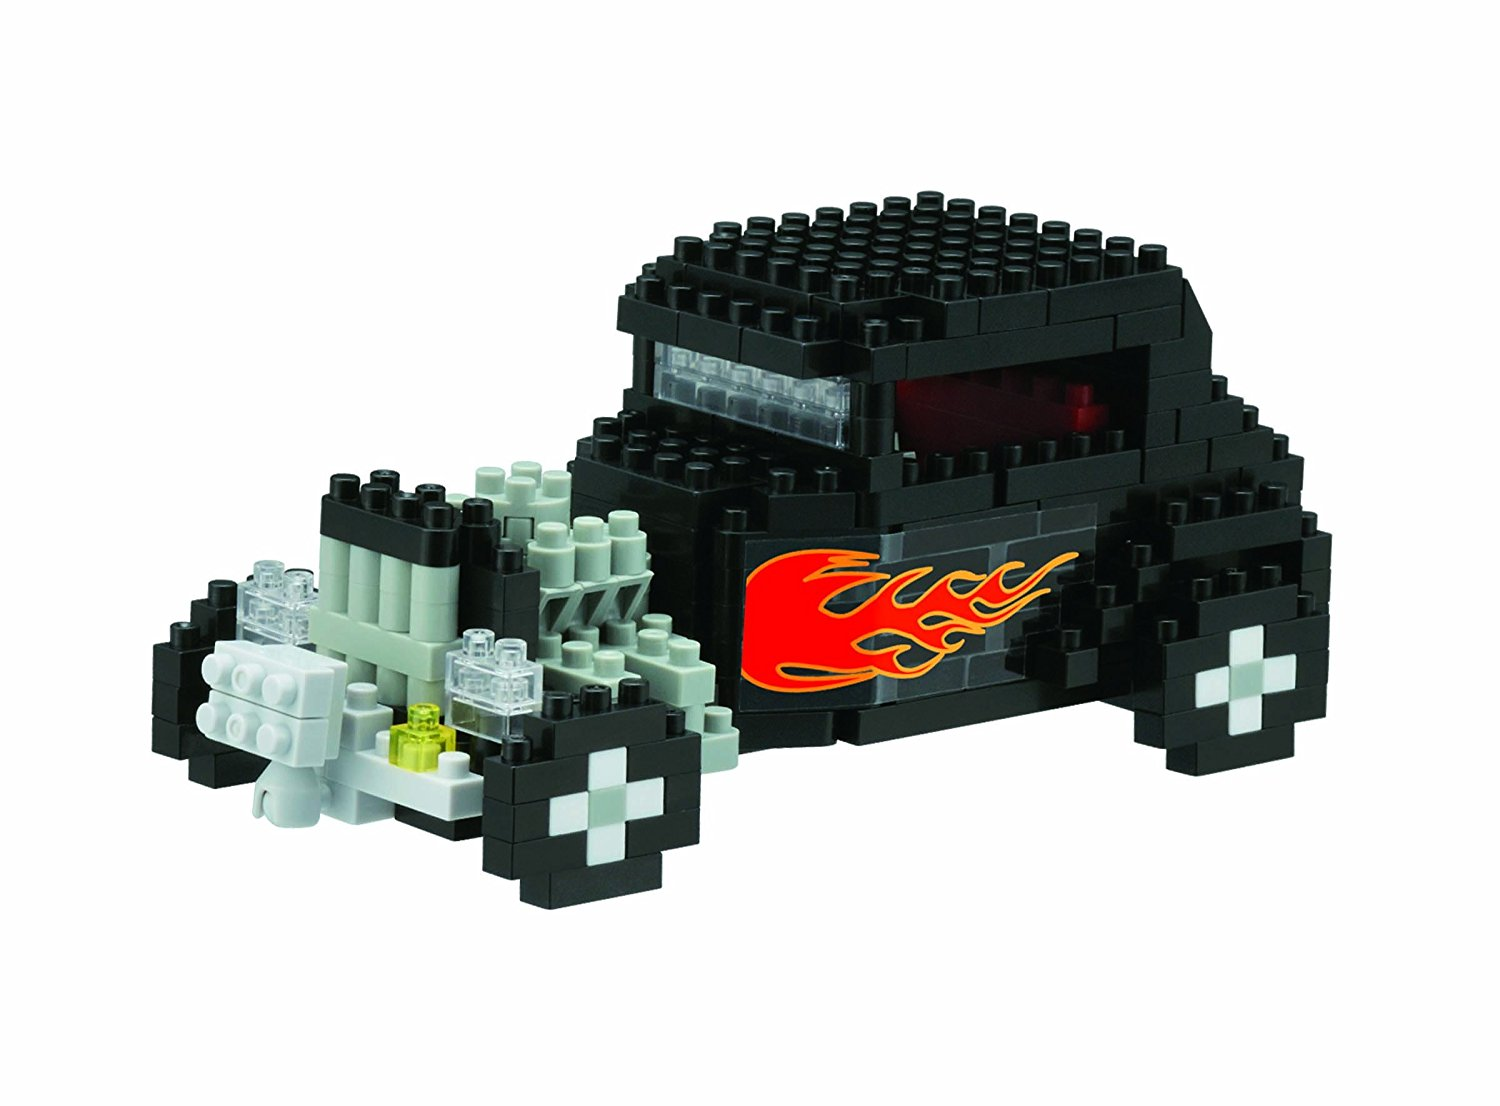 3d Puzzles For Boys, Nanoblock Over 300 Assorted Pieces Hot Rod Jigsaw Puzzles 3d by BY-NANOBLOCK